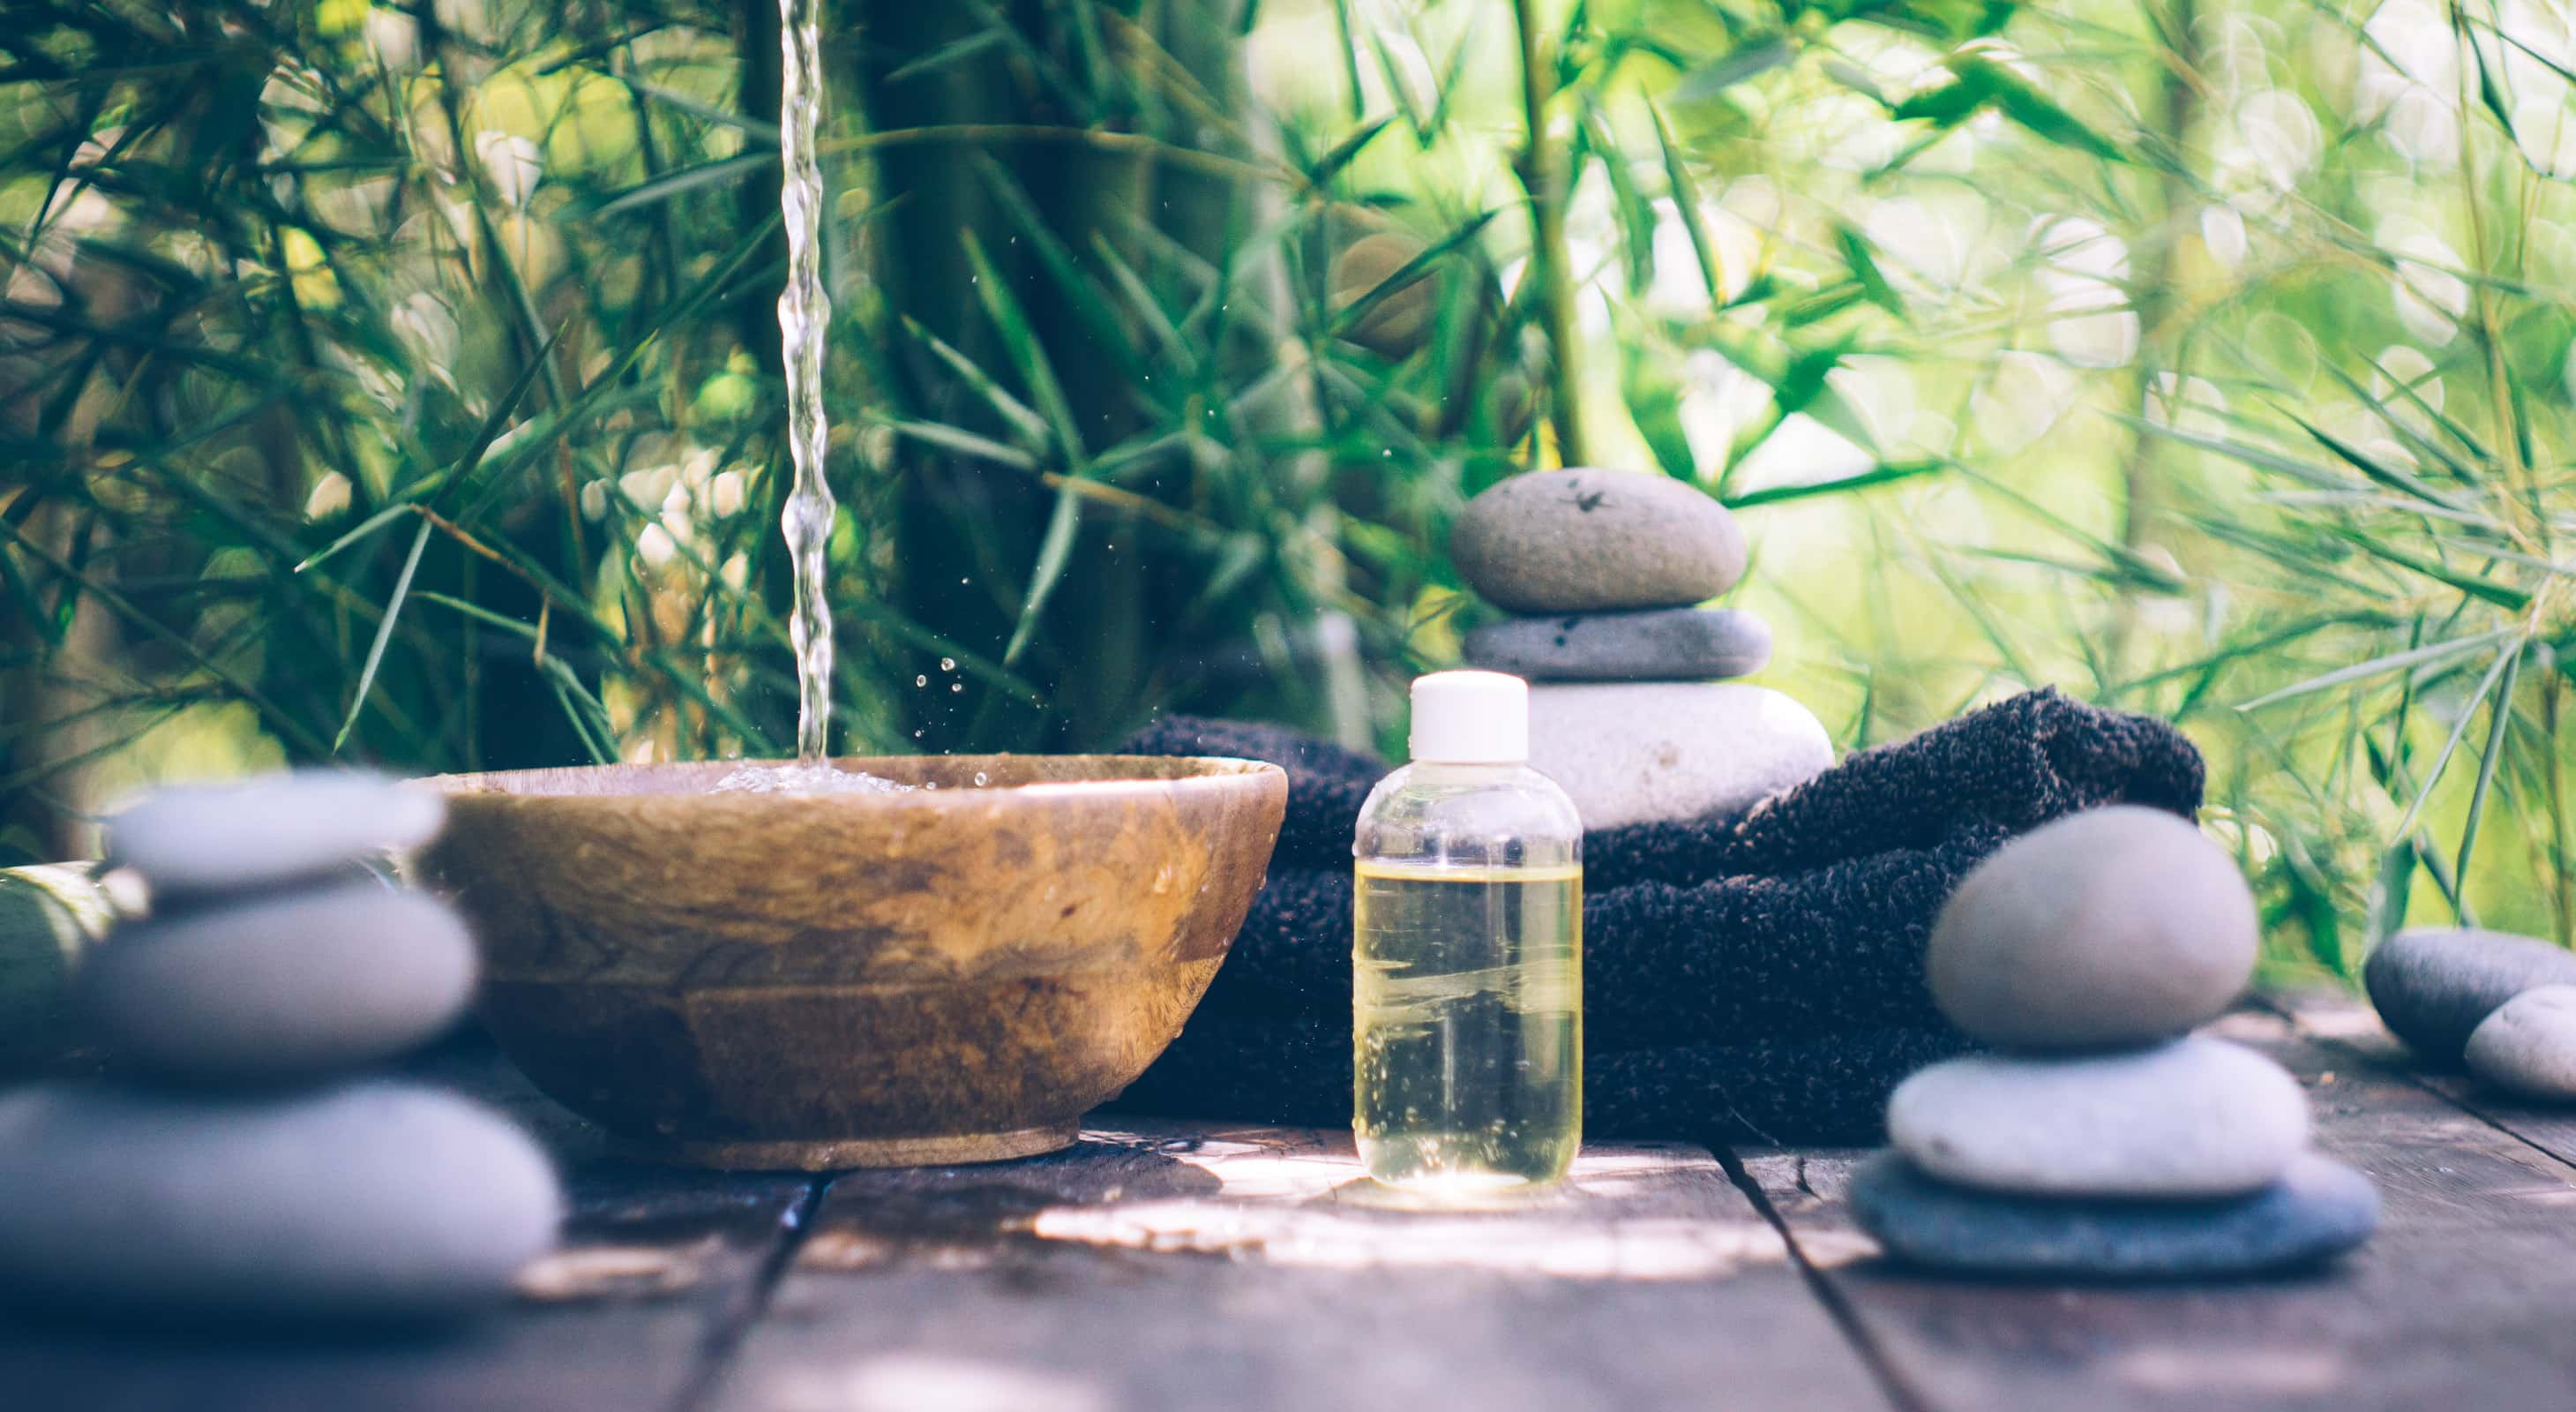 A zen spa scene with a wooden bowl, massage oil, and stacked pebbles near bamboo